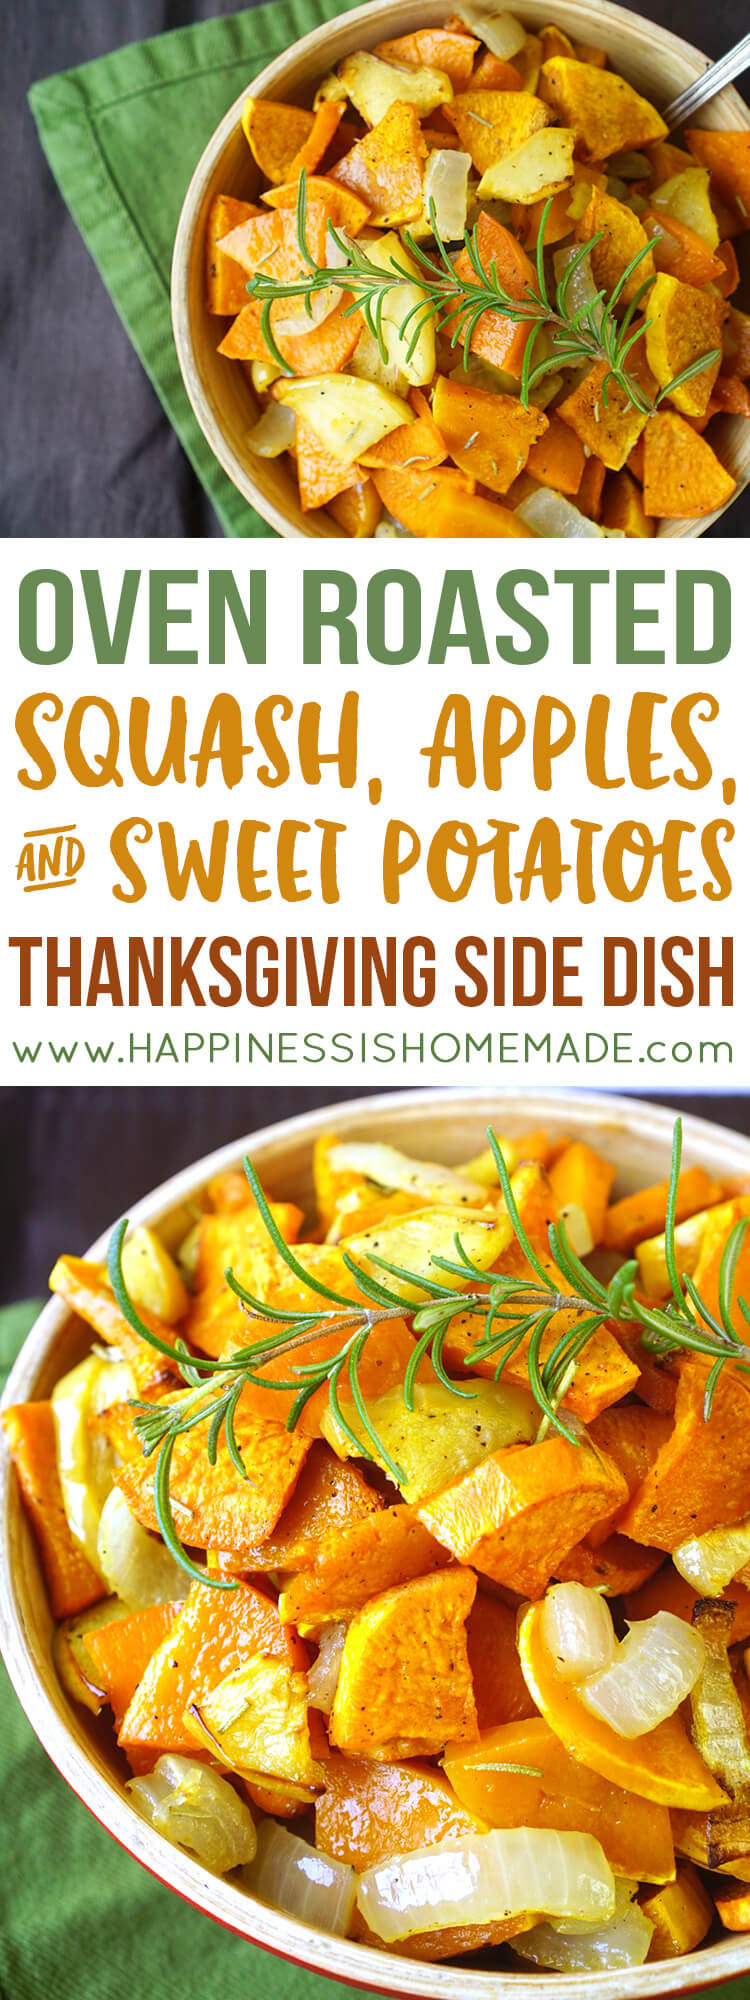 Thanksgiving Roasted Potatoes  Roasted Sweet Potatoes Squash & Apples Happiness is